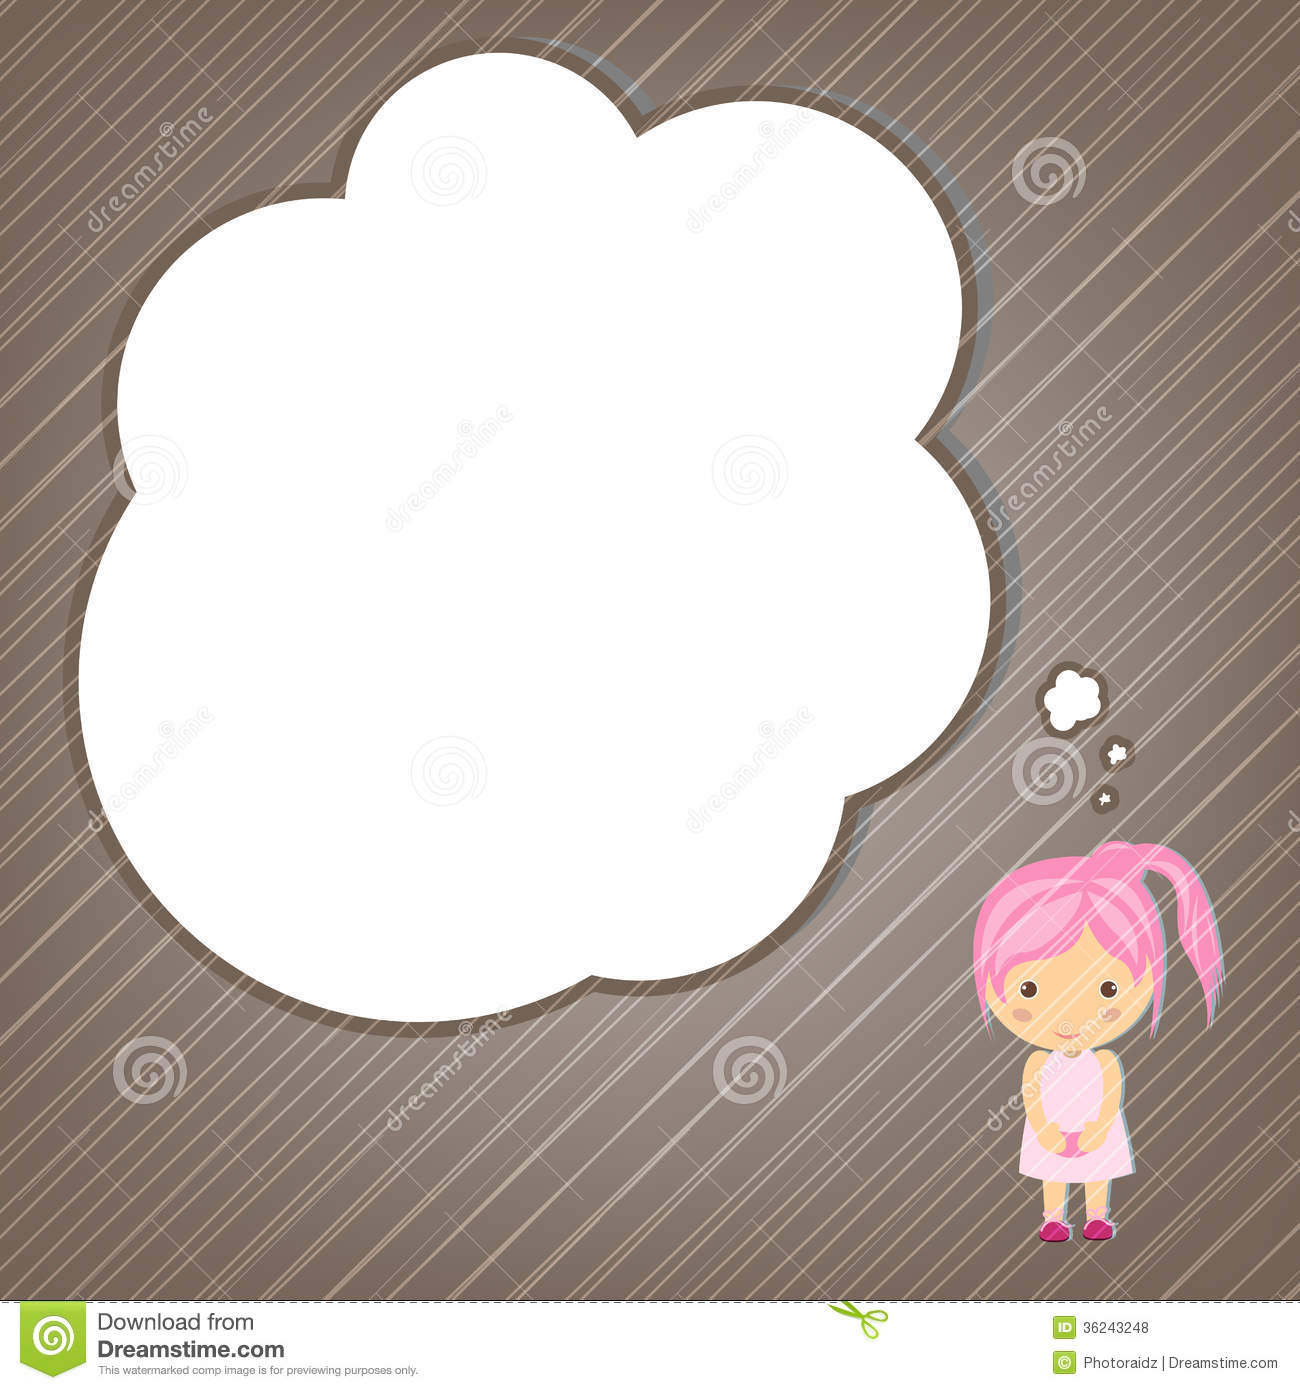 Dream Girl Cartoon Stock Vector Illustration Of Child